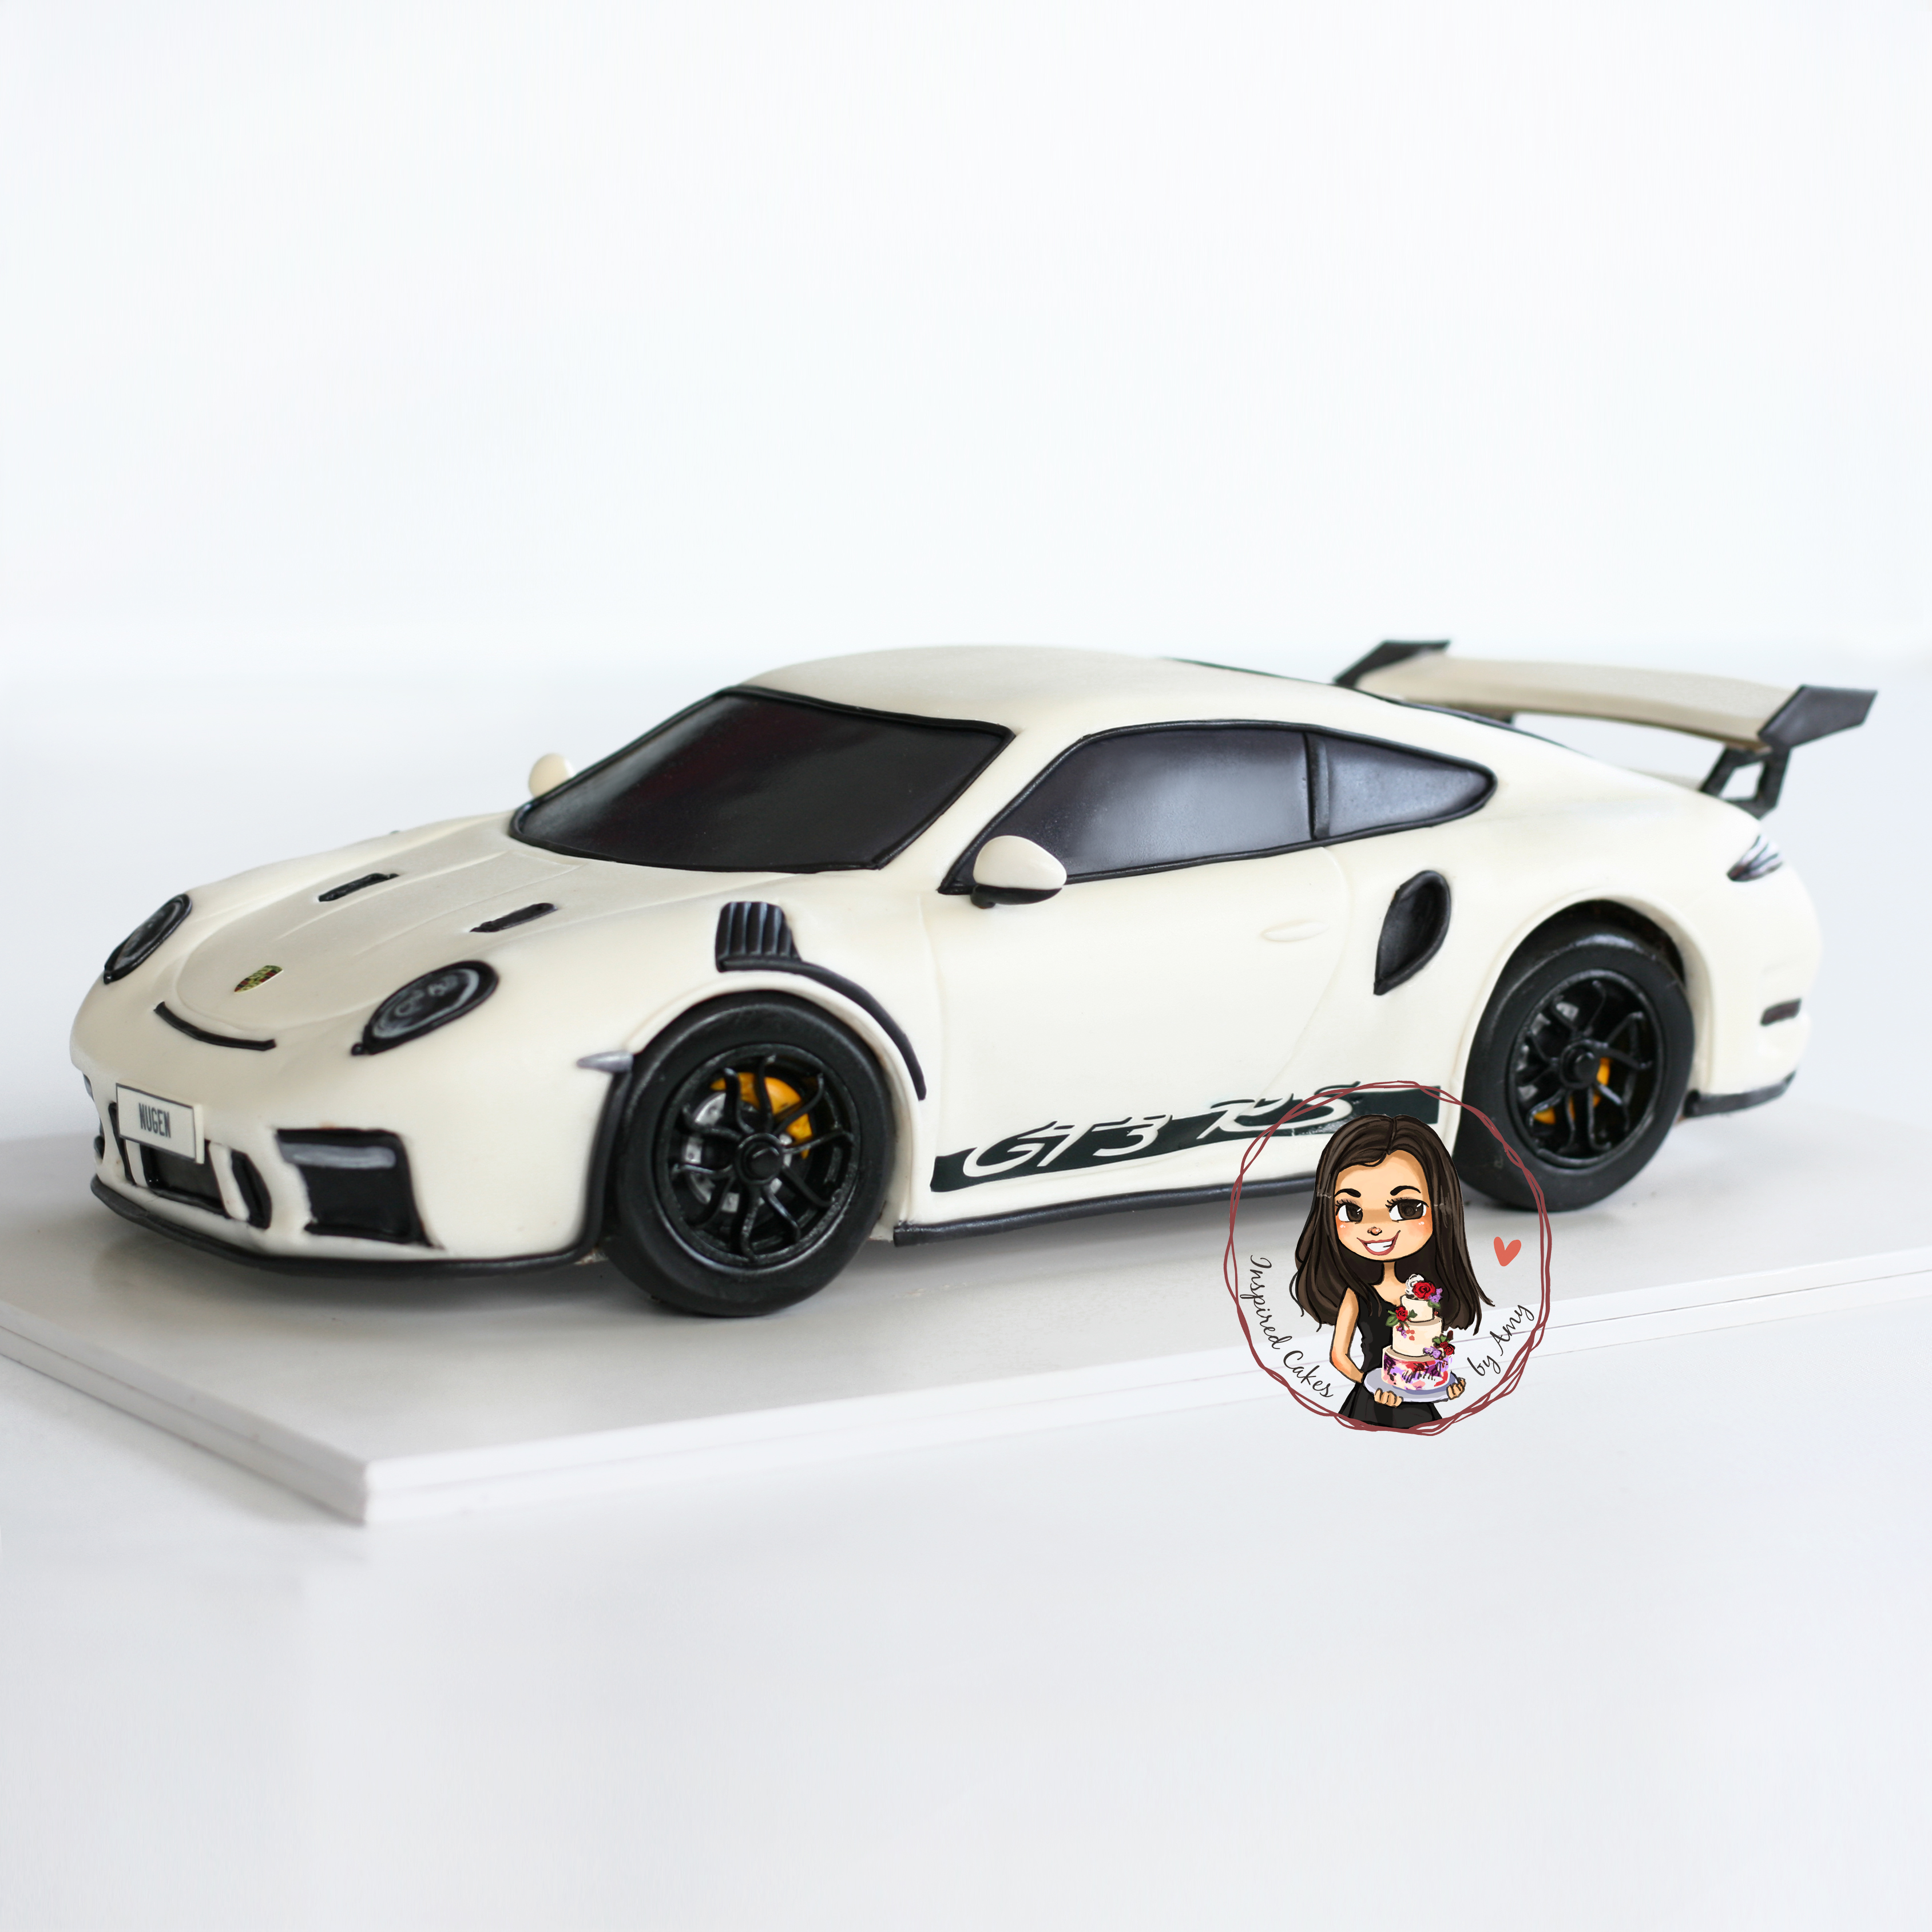 Porsche GT3RS money cake